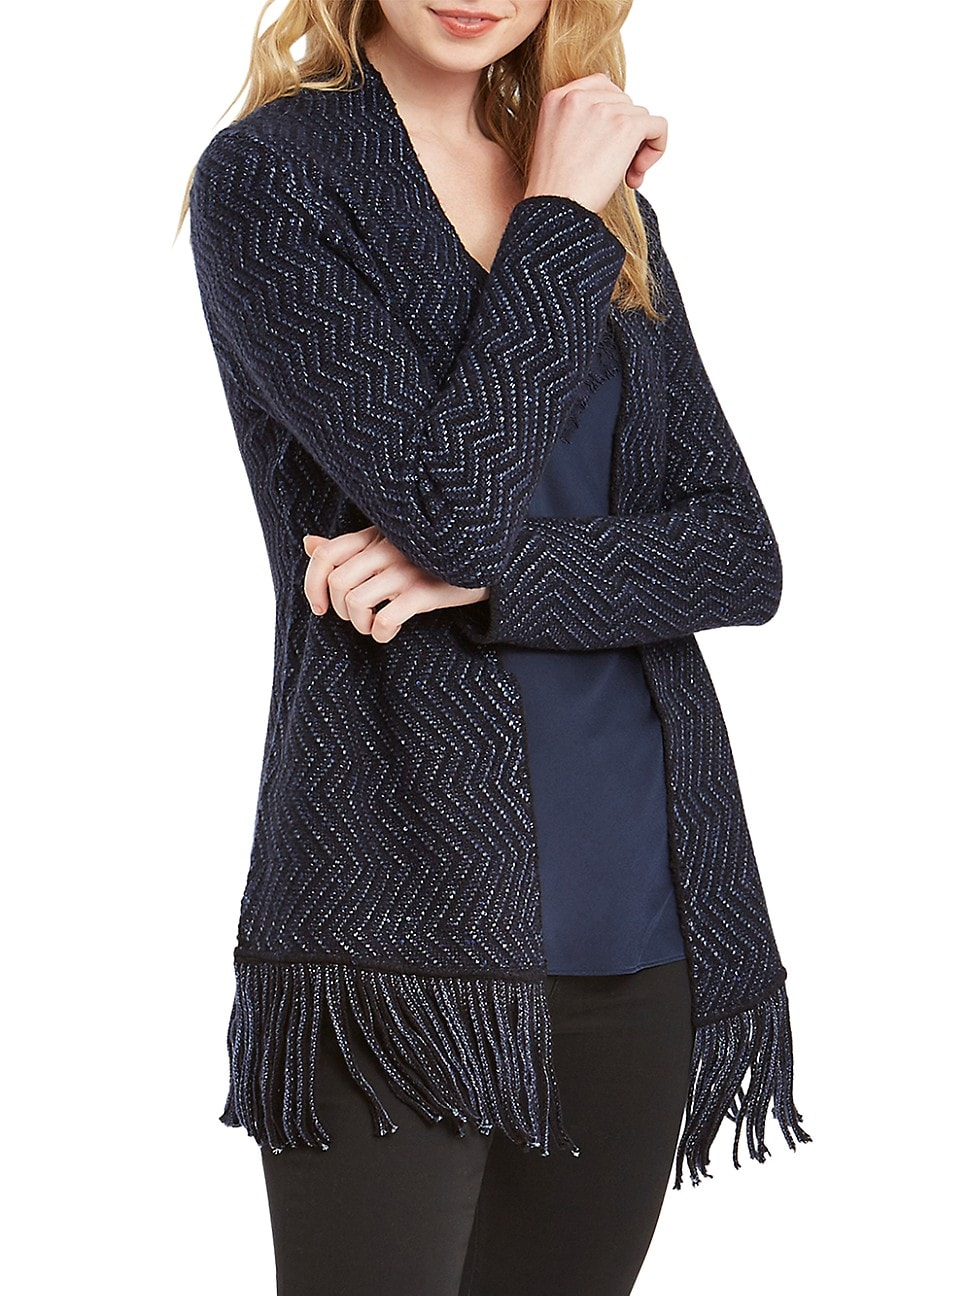 Nic + Zoe WOMEN'S SPARKLE & SHINE CARDIGAN